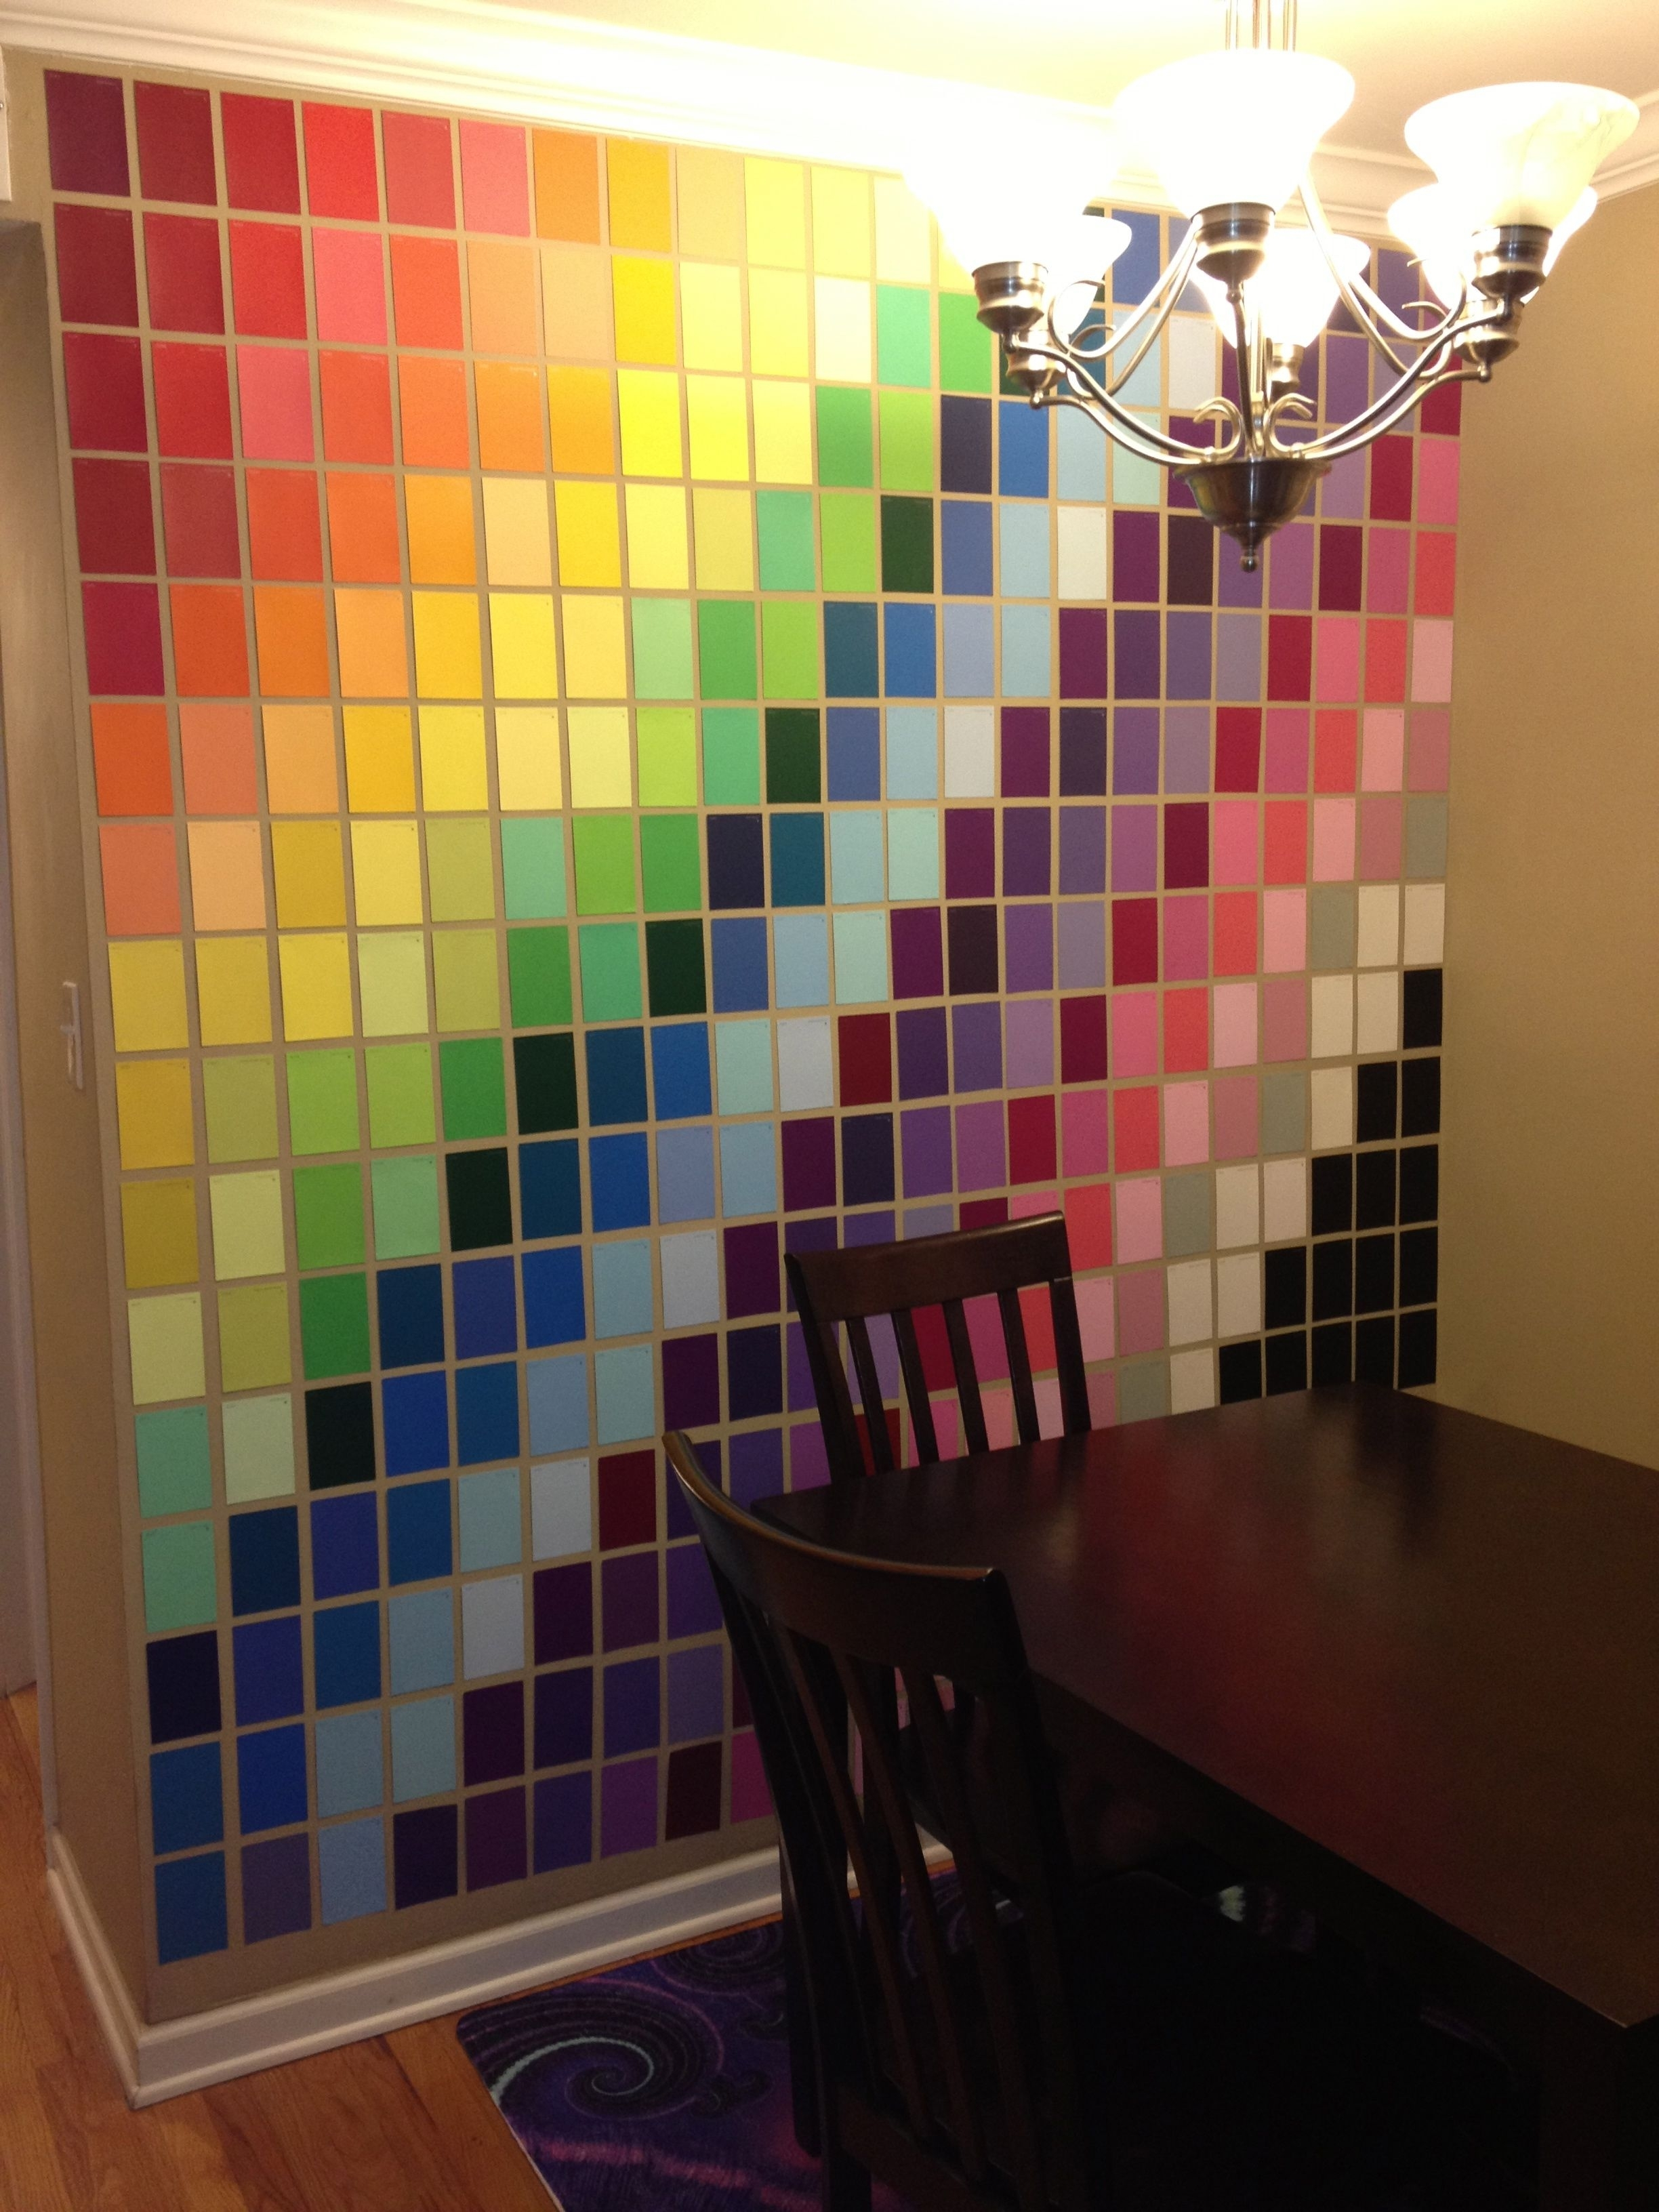 Wall Art Made With Paint Samples From Home Depot. | Art Pertaining To Most Up To Date Fabric Covered Squares Wall Art (Gallery 9 of 15)